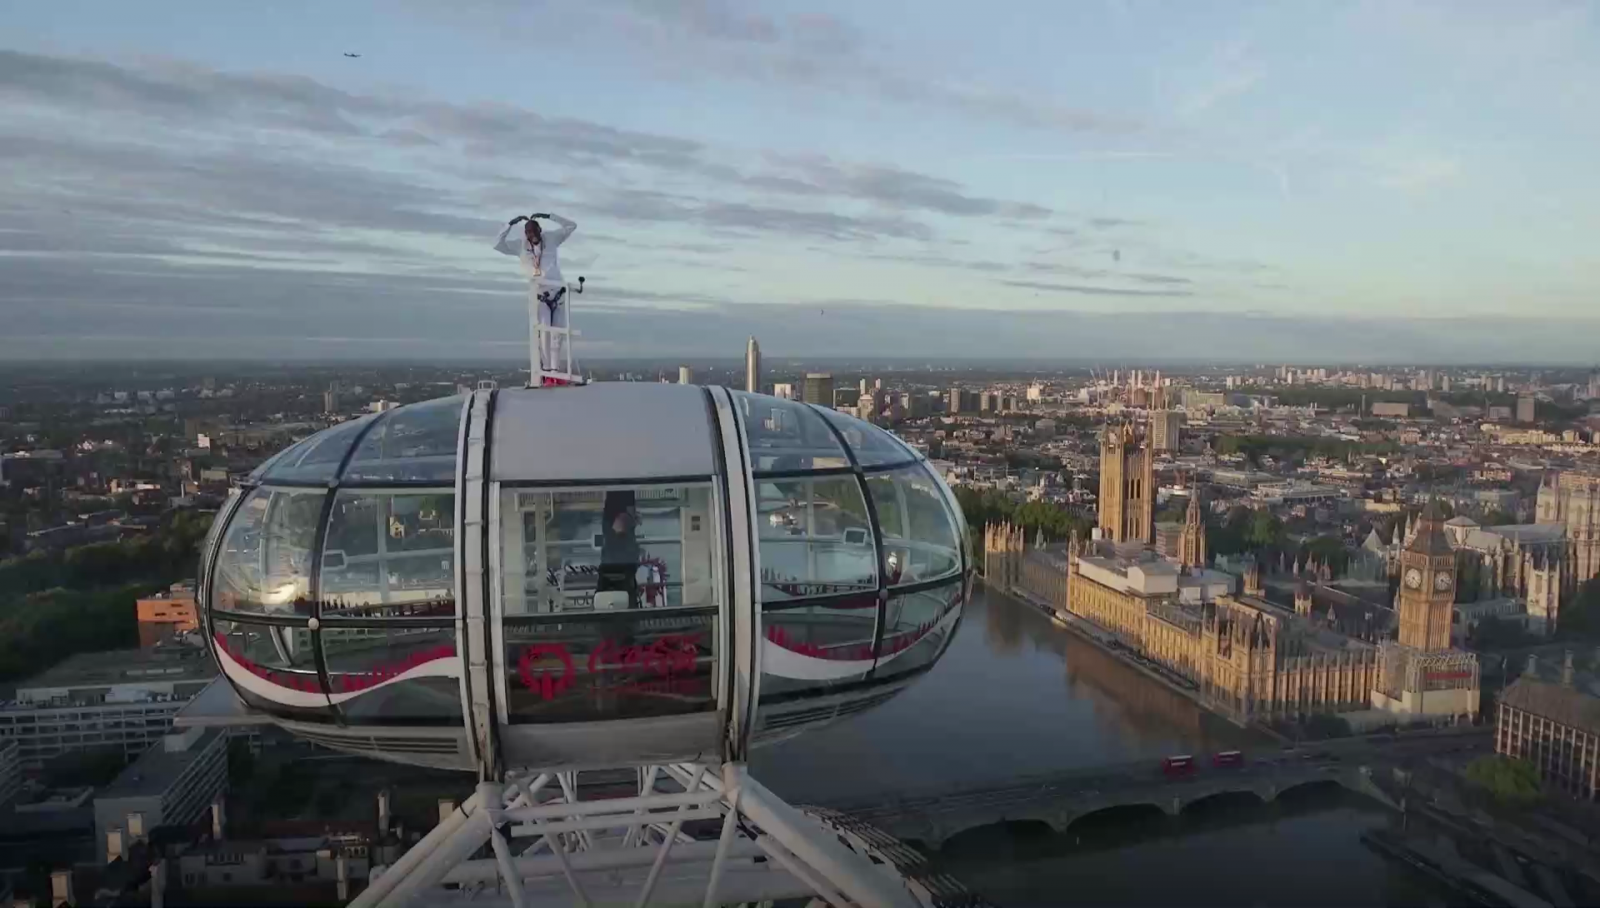 sir-mo-farah-says-farewell-with-signature-move-on-london-eye